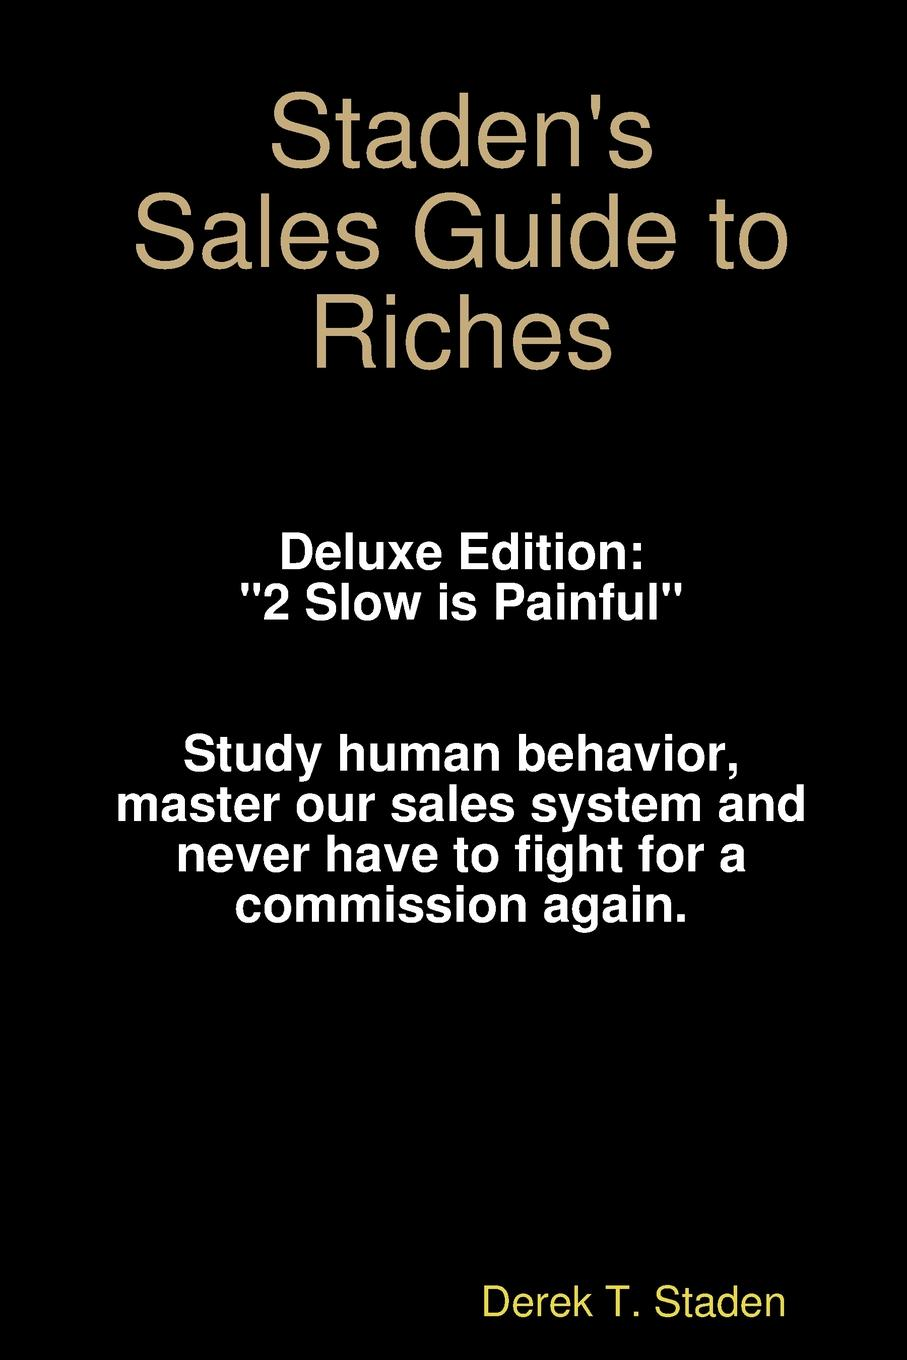 Derek Staden Staden.s Sales Guide to Riches paul mccord m creating a million dollar a year sales income sales success through client referrals